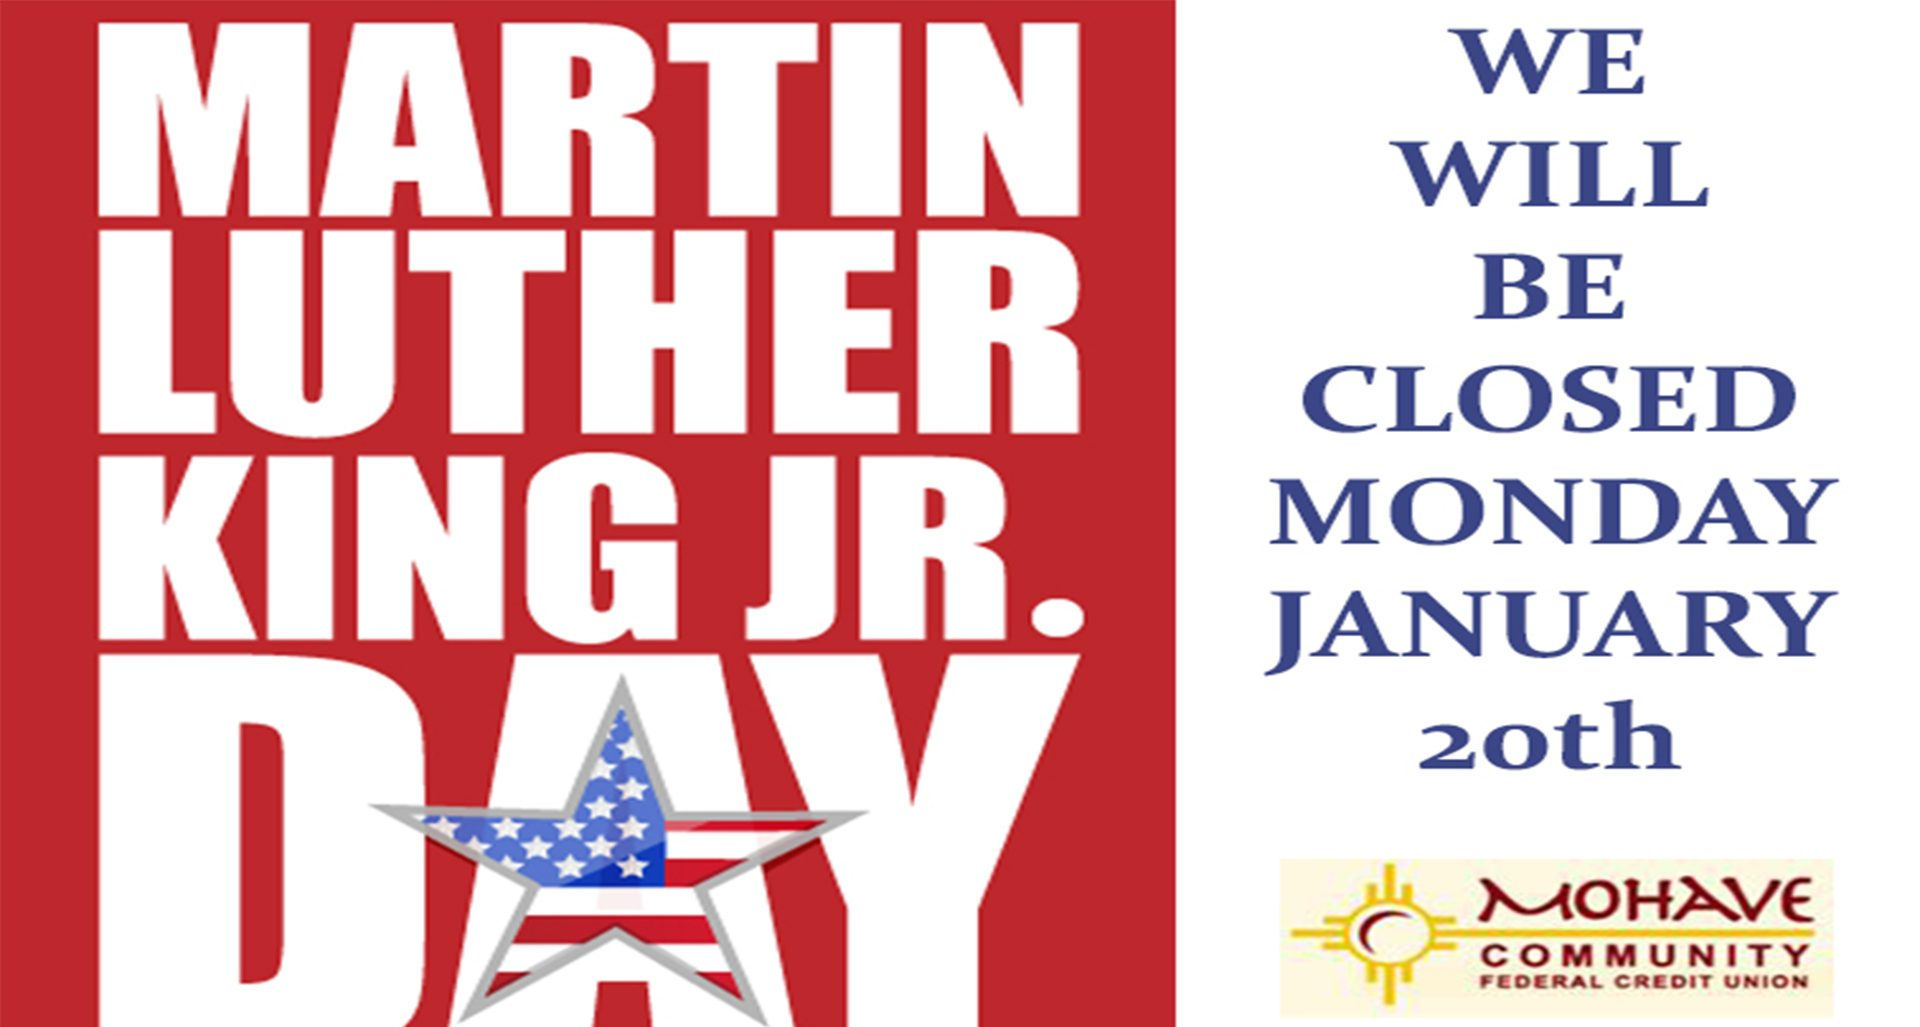 We will be closed Monday January 20th for Martin Luther King Jr. Day.